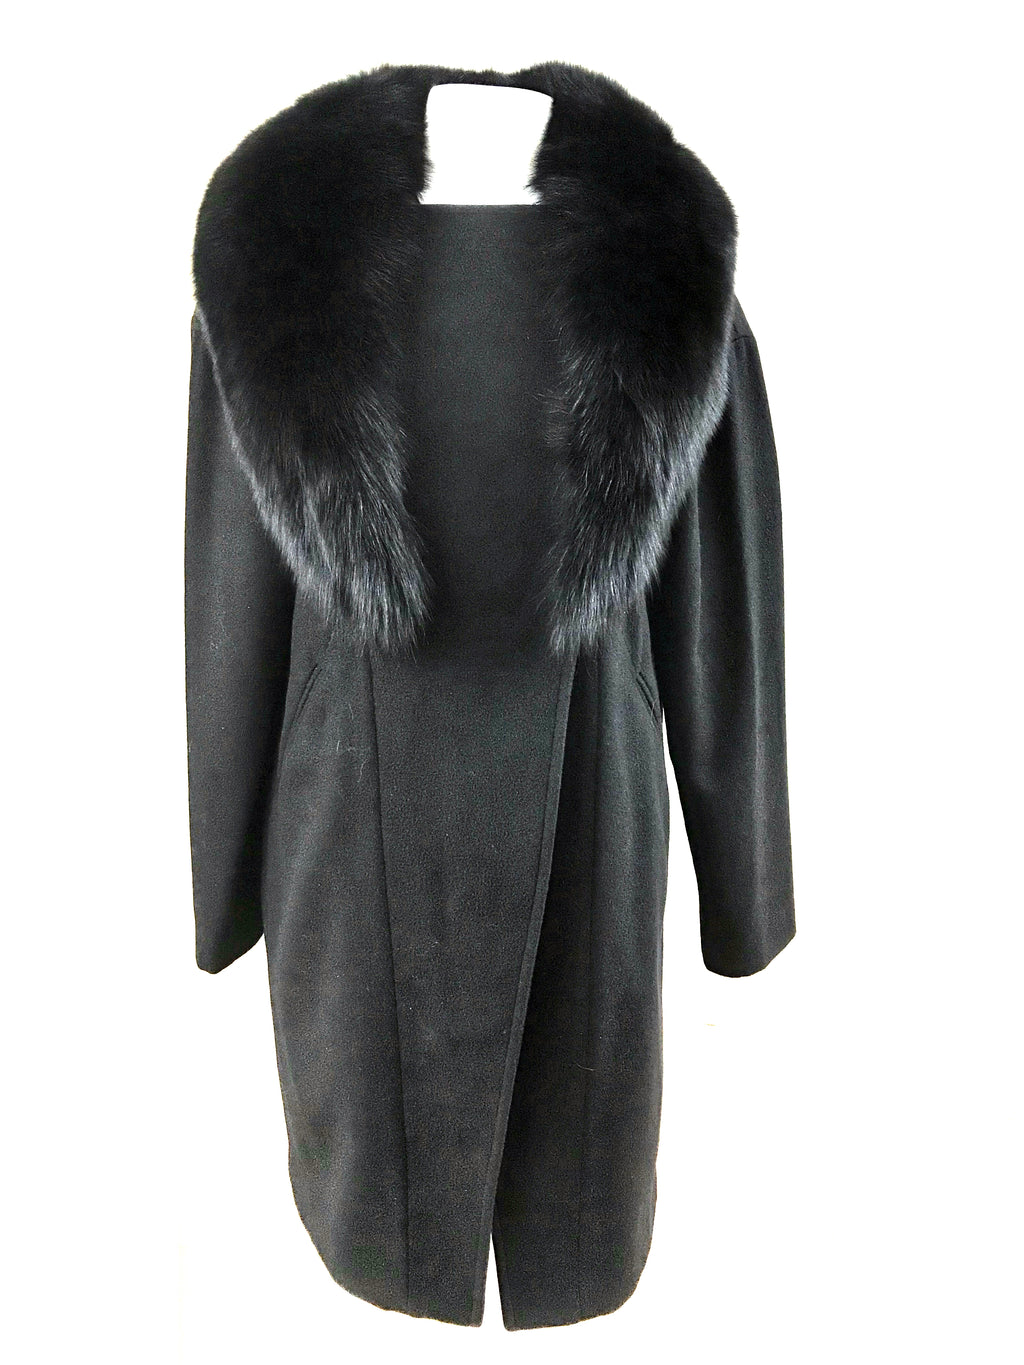 "36"" 100% Cashmere Asymmetrical Coat with Detachable Fox Collar - Size Small"